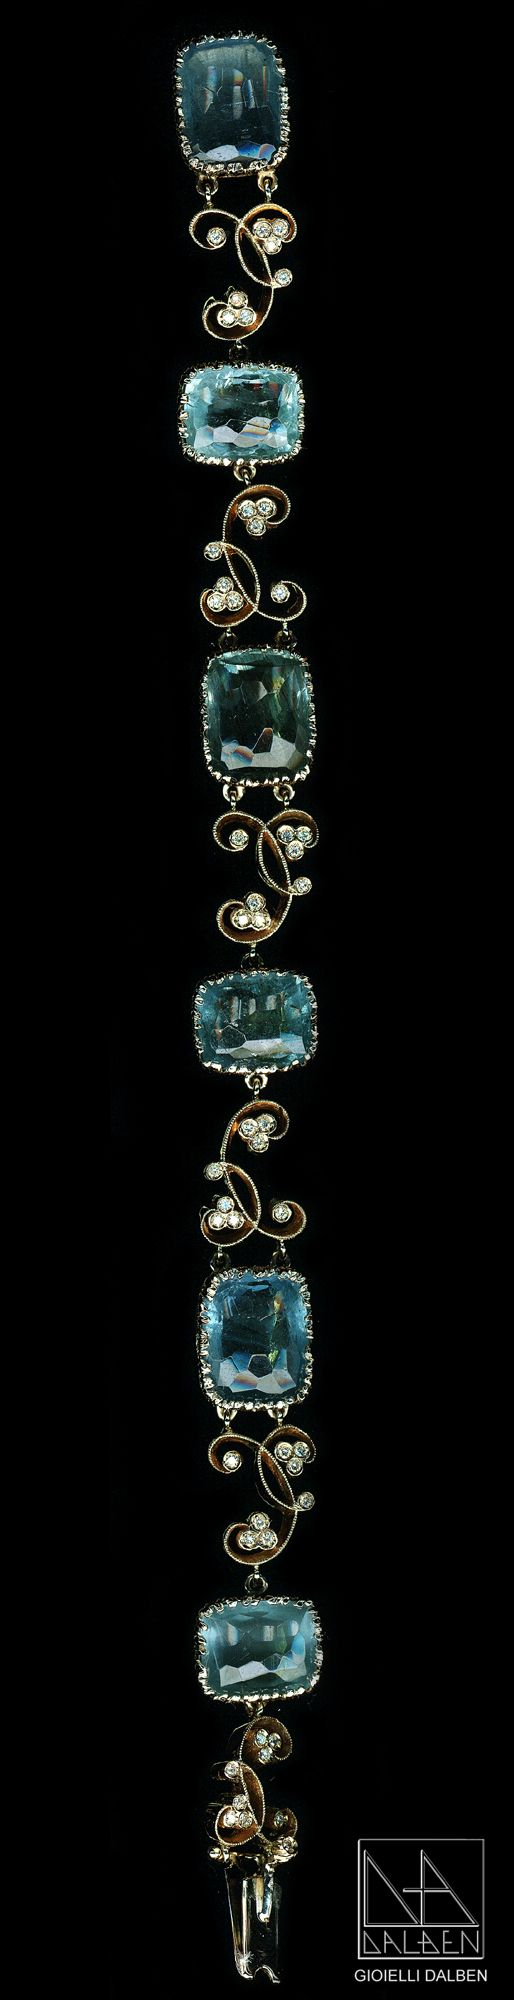 diamonds aquamarine bracelet - gioielli dalben - #jewelry #bracelet #diamonds